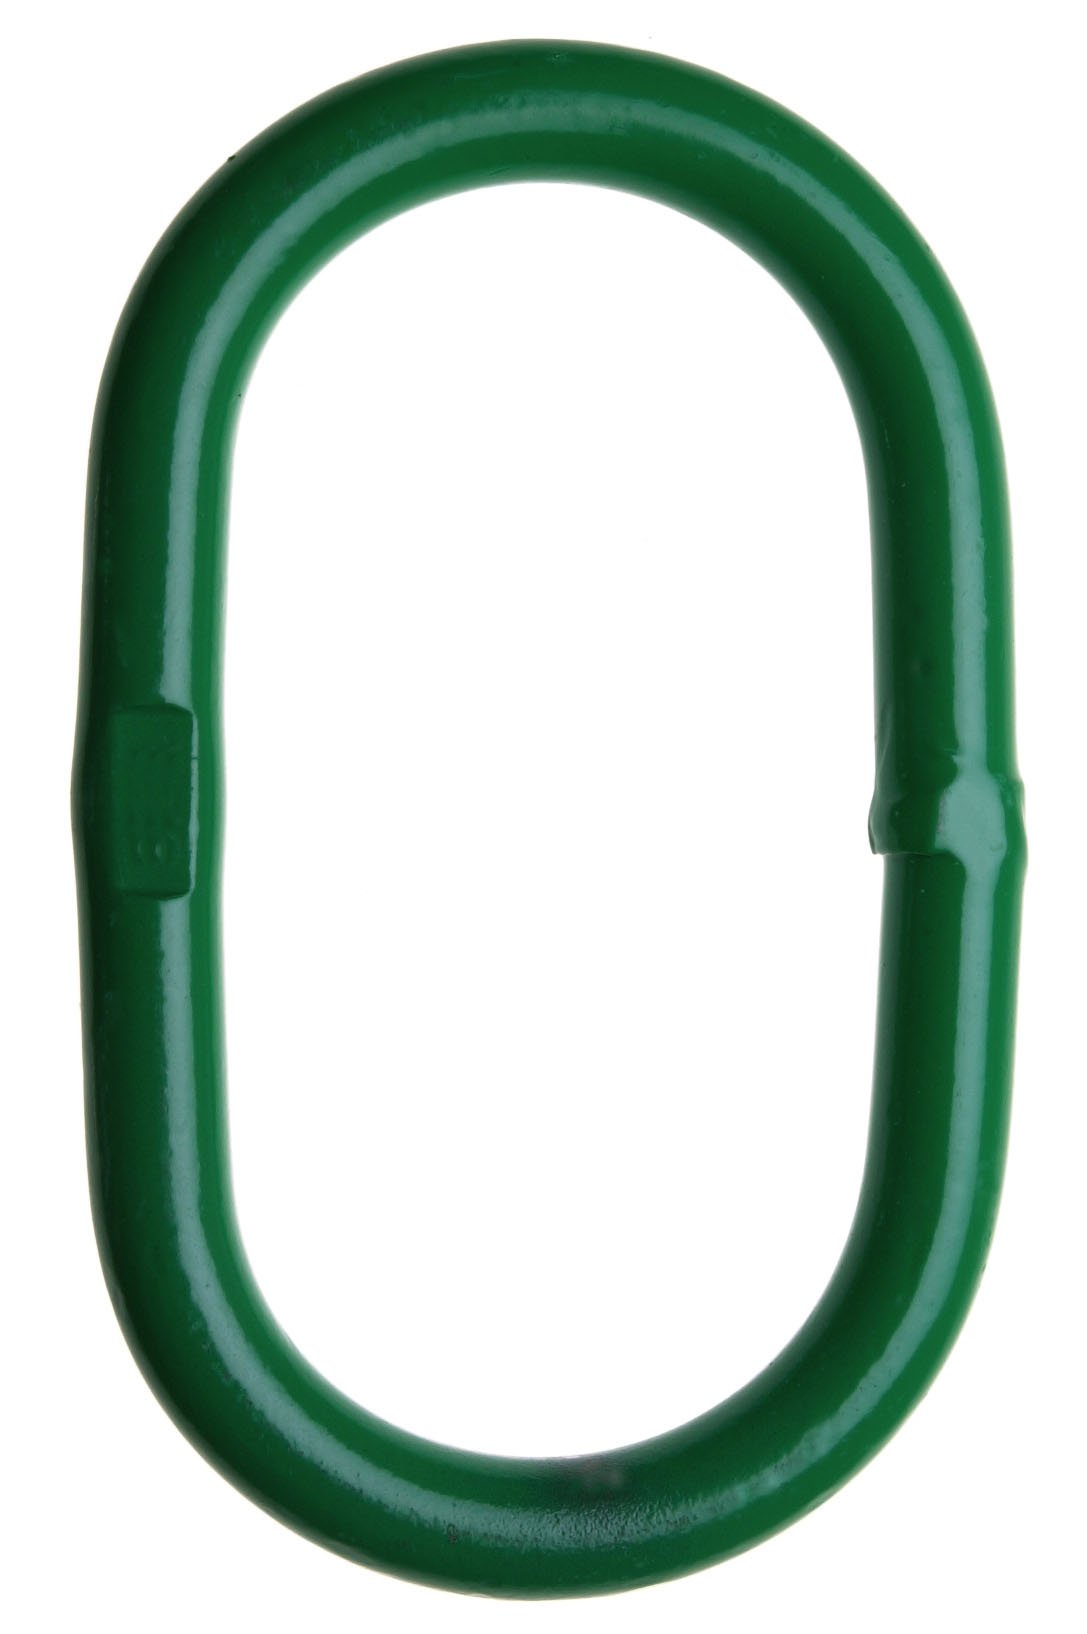 Campbell VO-4 Grade 100 Cam-Alloy Oblong Master Link, Painted Green, 1-1/4'' Diameter, 45200 lbs Load Capacity